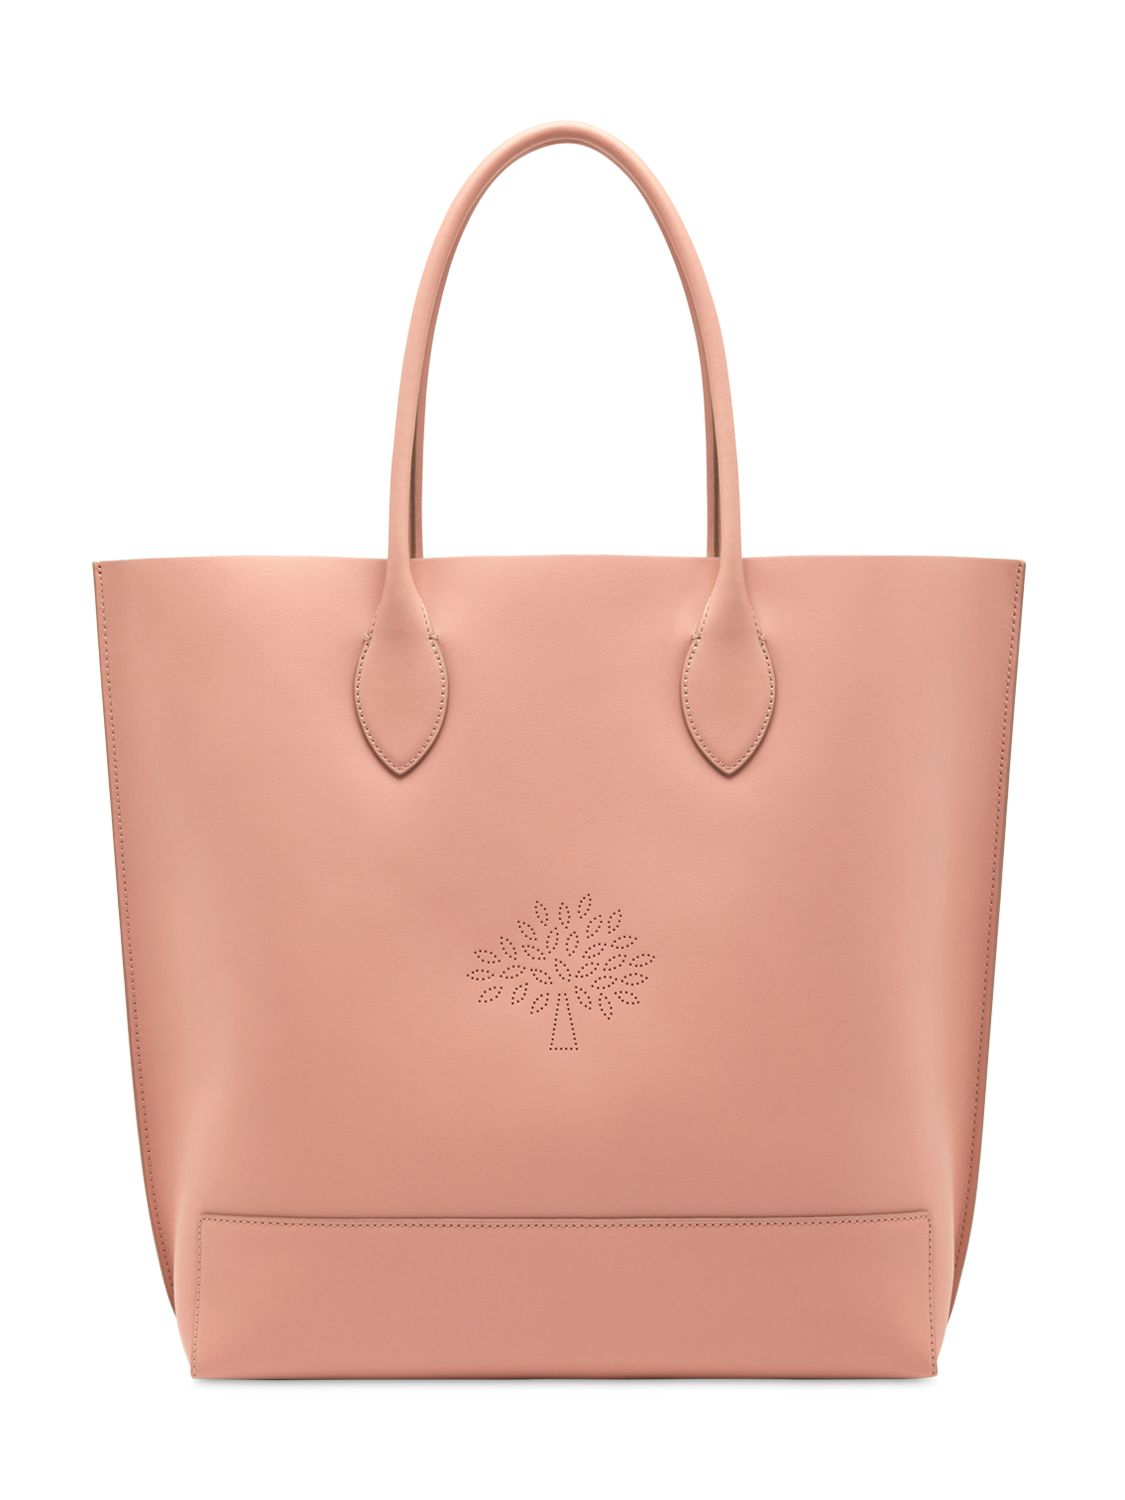 088fe10896 cheap totes womens bags women mulberry 99db7 0f48e  hot lyst mulberry  blossom nappa leather tote bag in pink 616aa b82fe